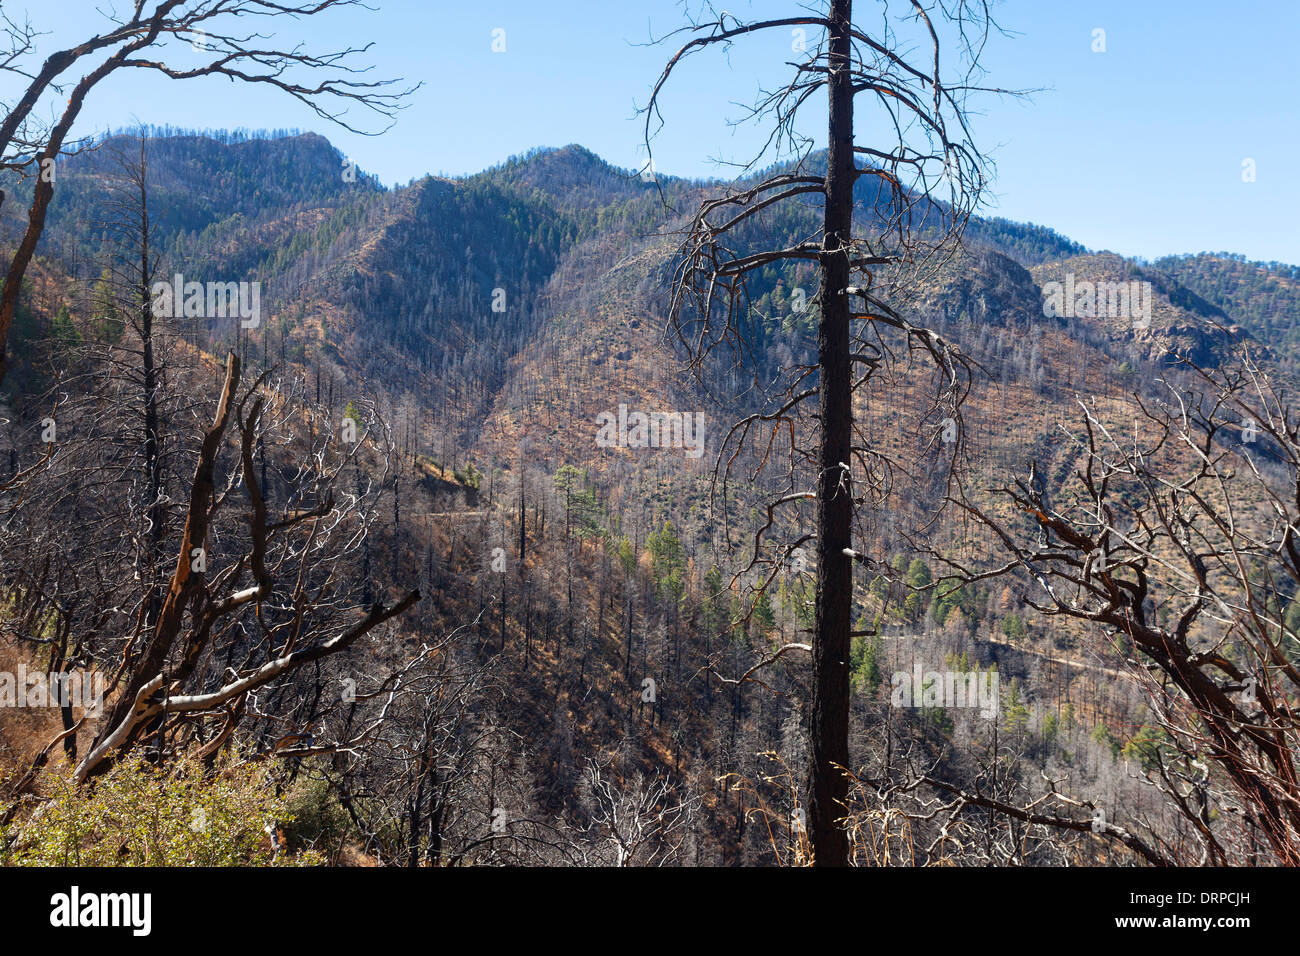 Burned pine forest on hillsides in the Chiricahua National Park, Arizona, USA - Stock Image